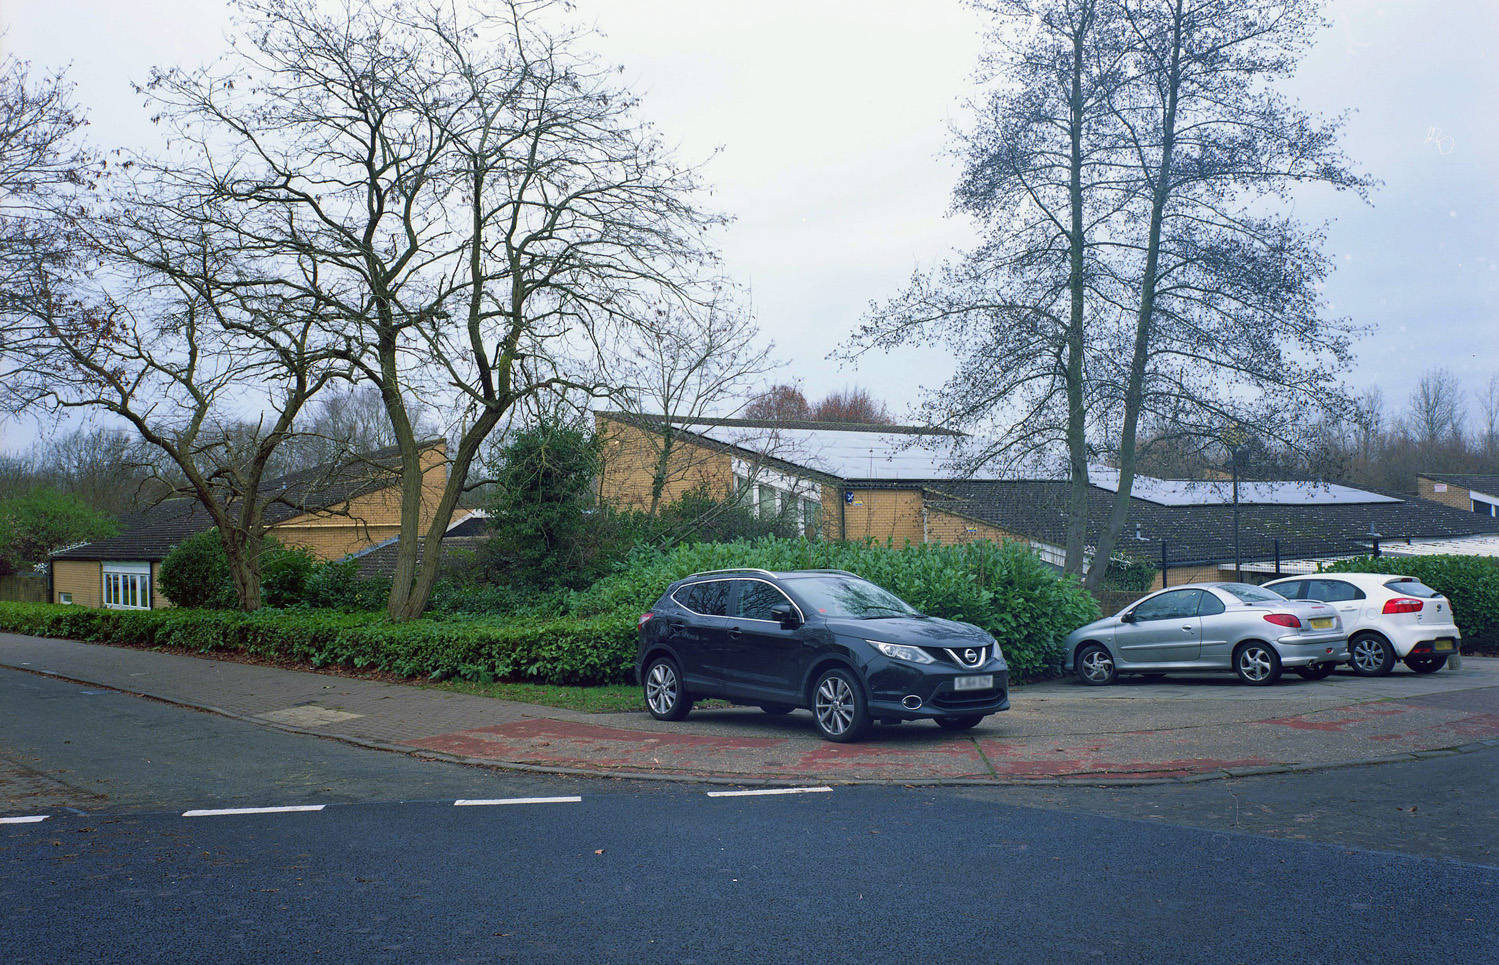 Today, this same building is Southwood Primary School. The trees have grown to obscure the buildings, but their distinctive roofs and the arc of the road are still clearly visible